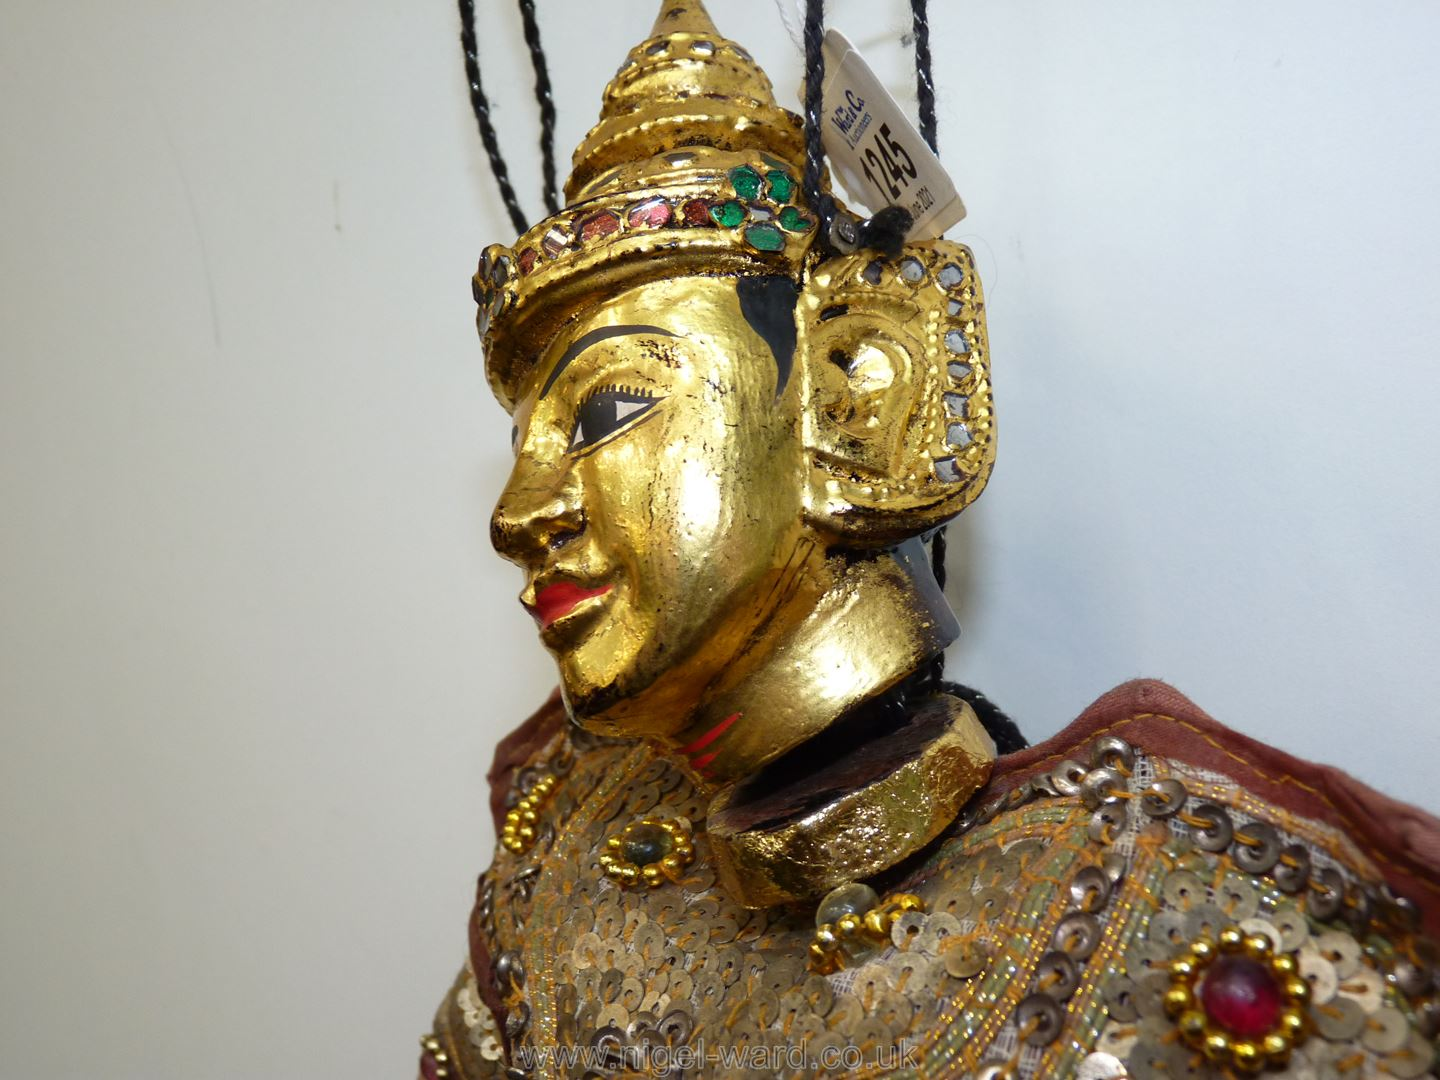 An ornate Thai Marionette richly decorated with sequins, 16 1/2'' tall approx. - Image 3 of 7